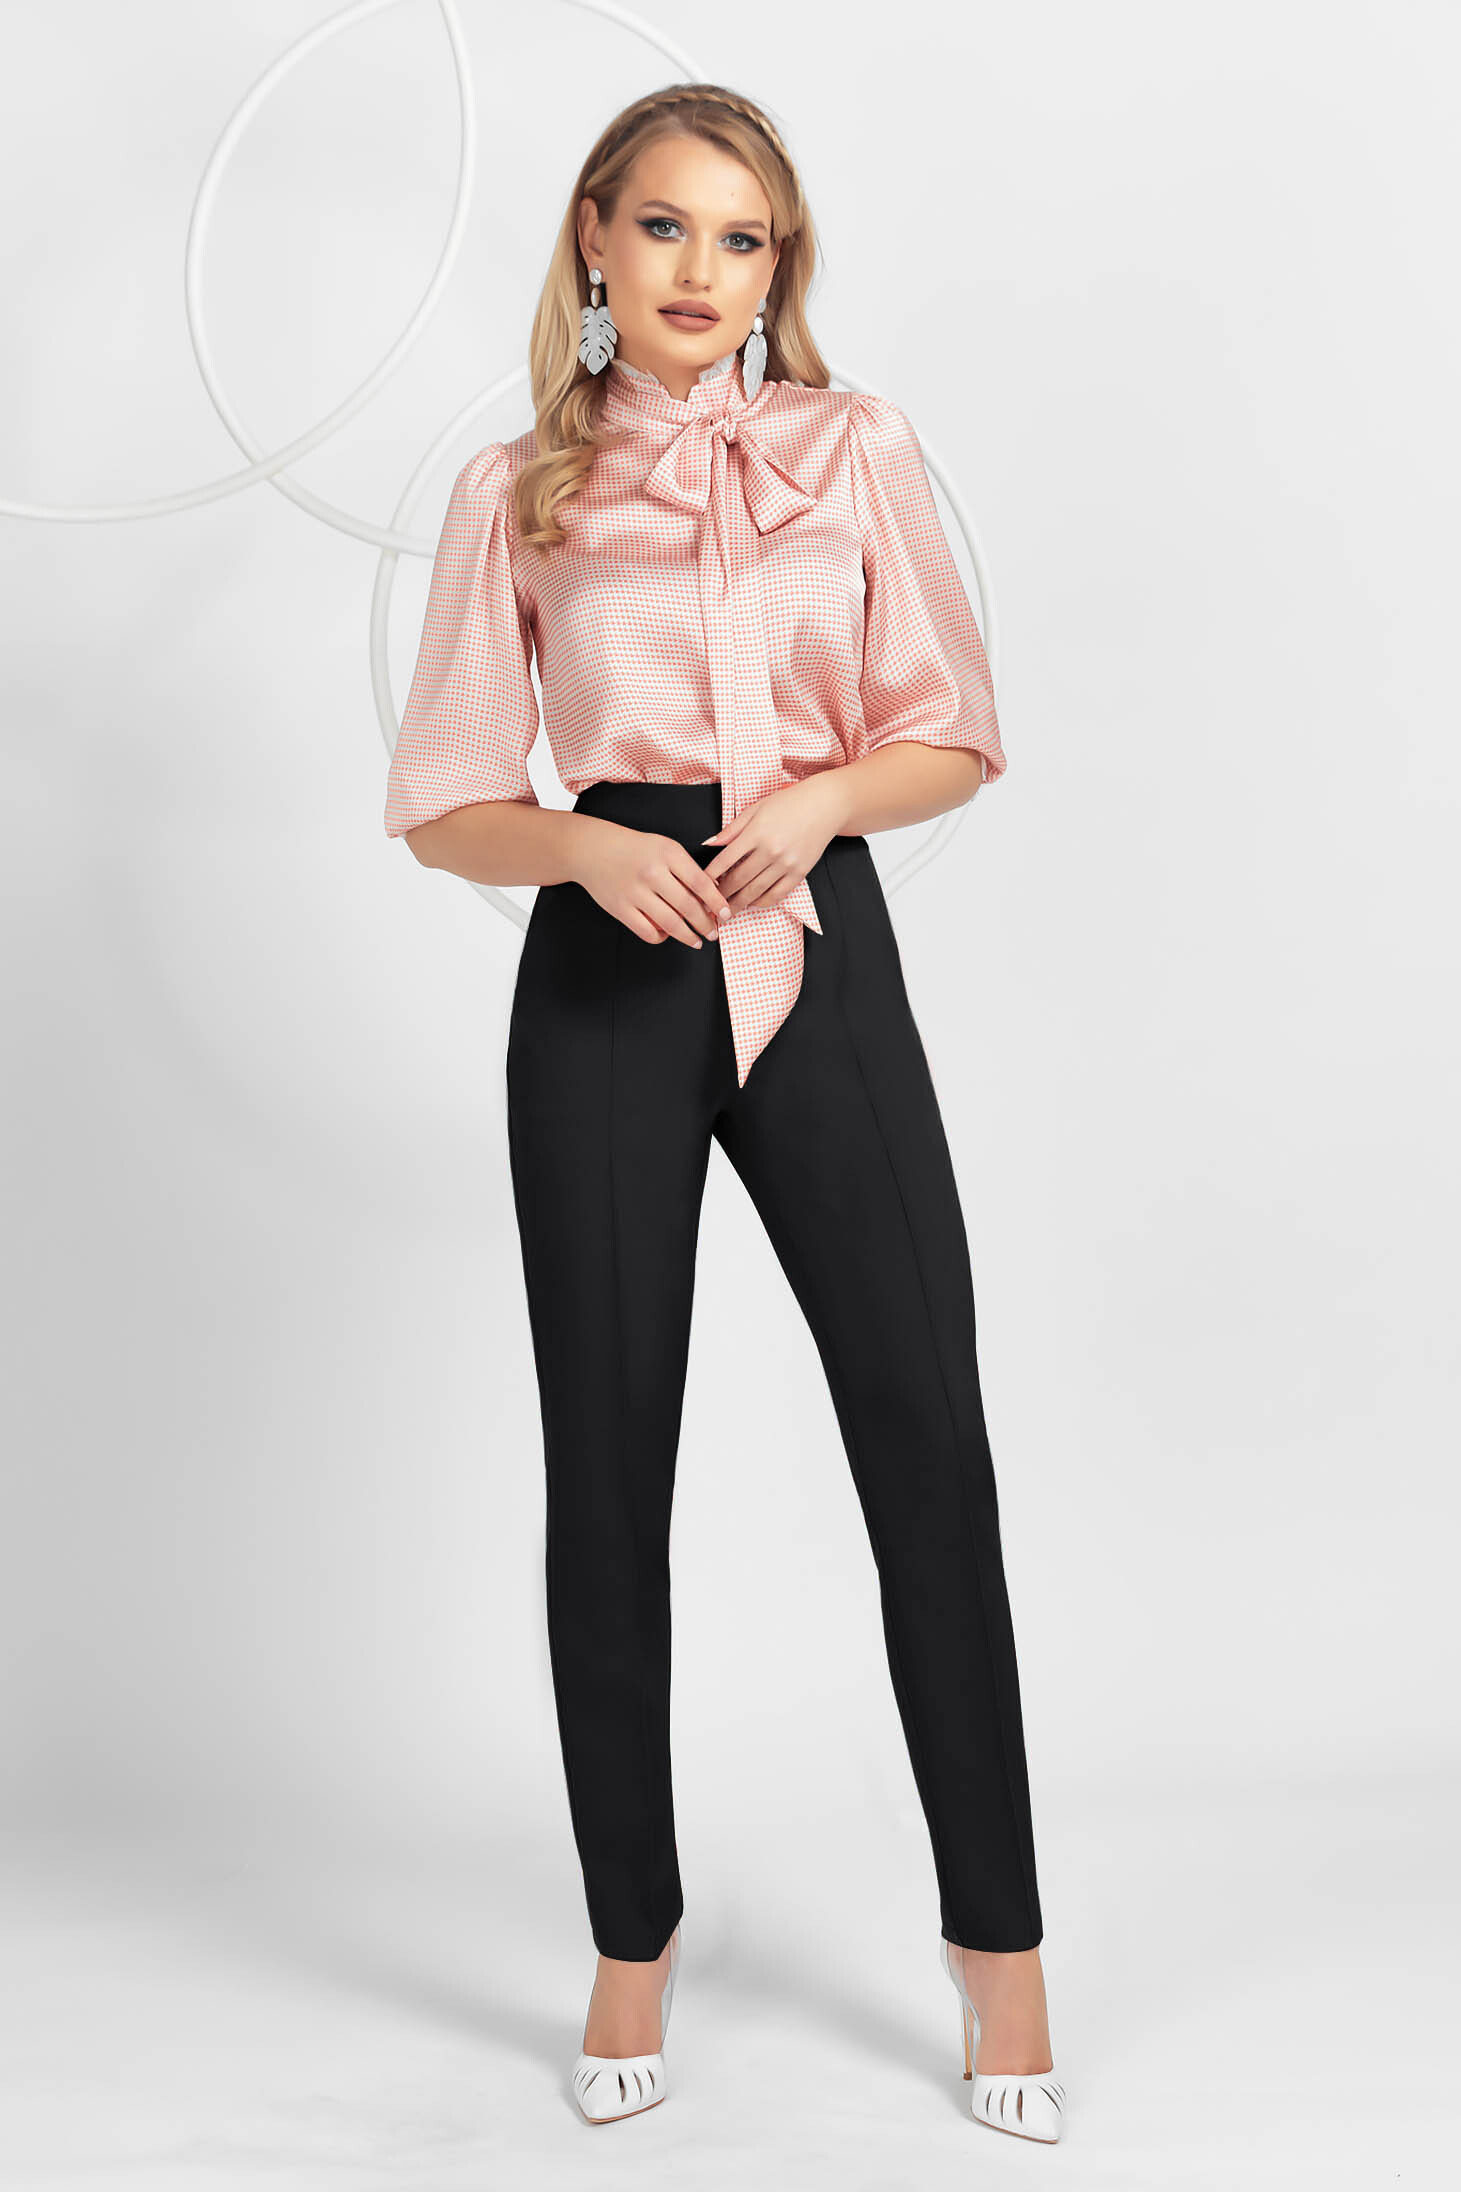 Trousers black office conical slightly elastic fabric